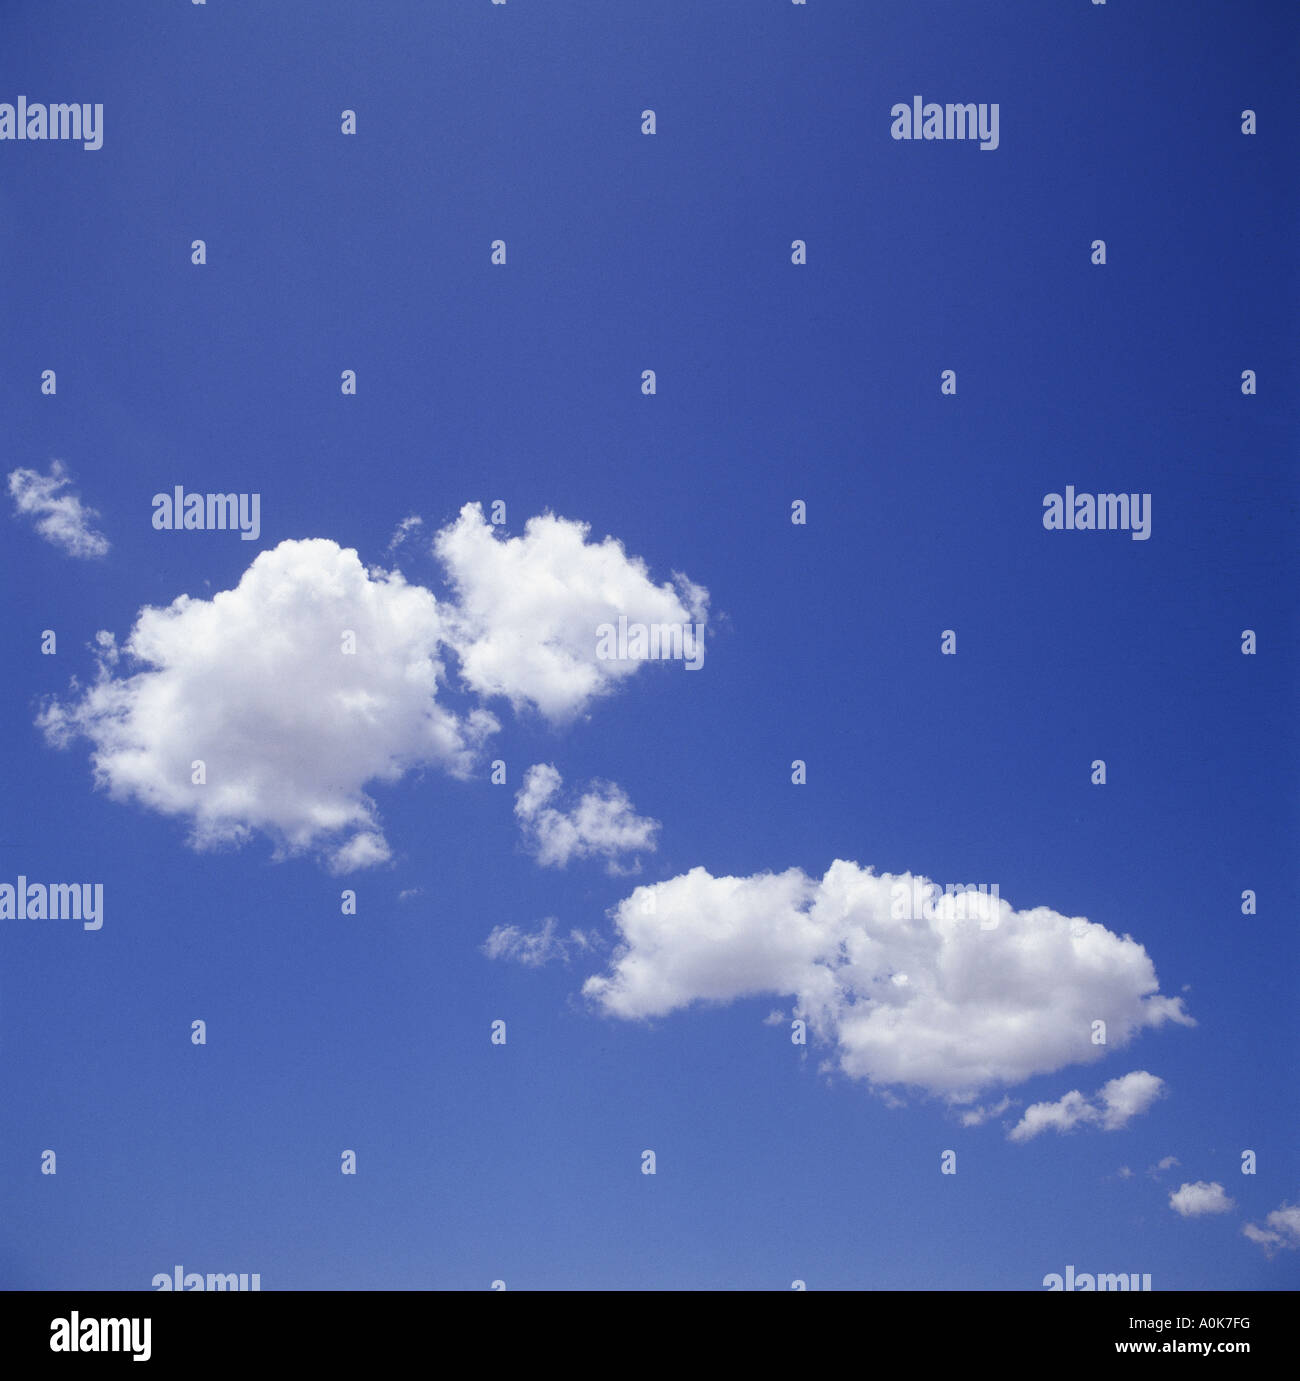 Sky, Clouds - Stock Image